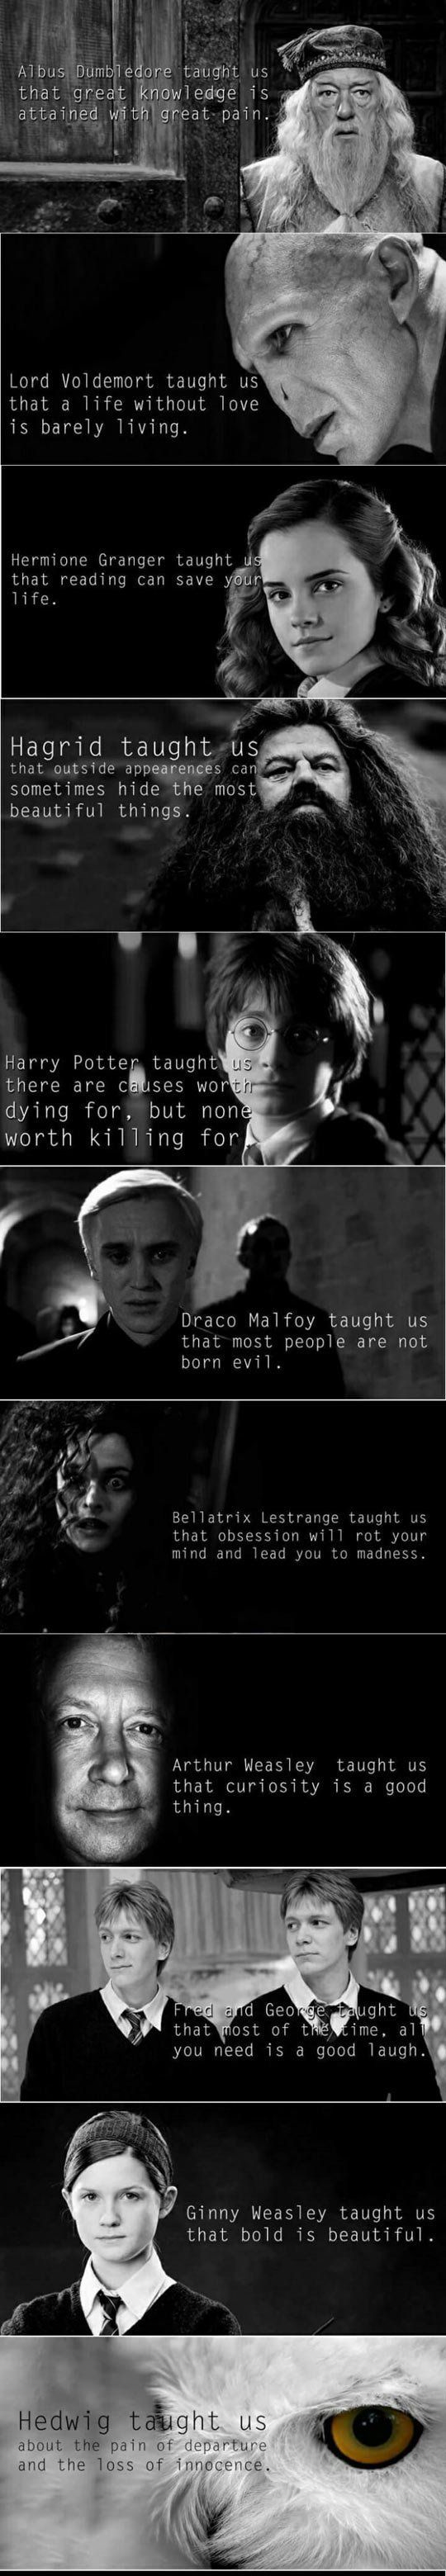 The Moral Of Harry Potter